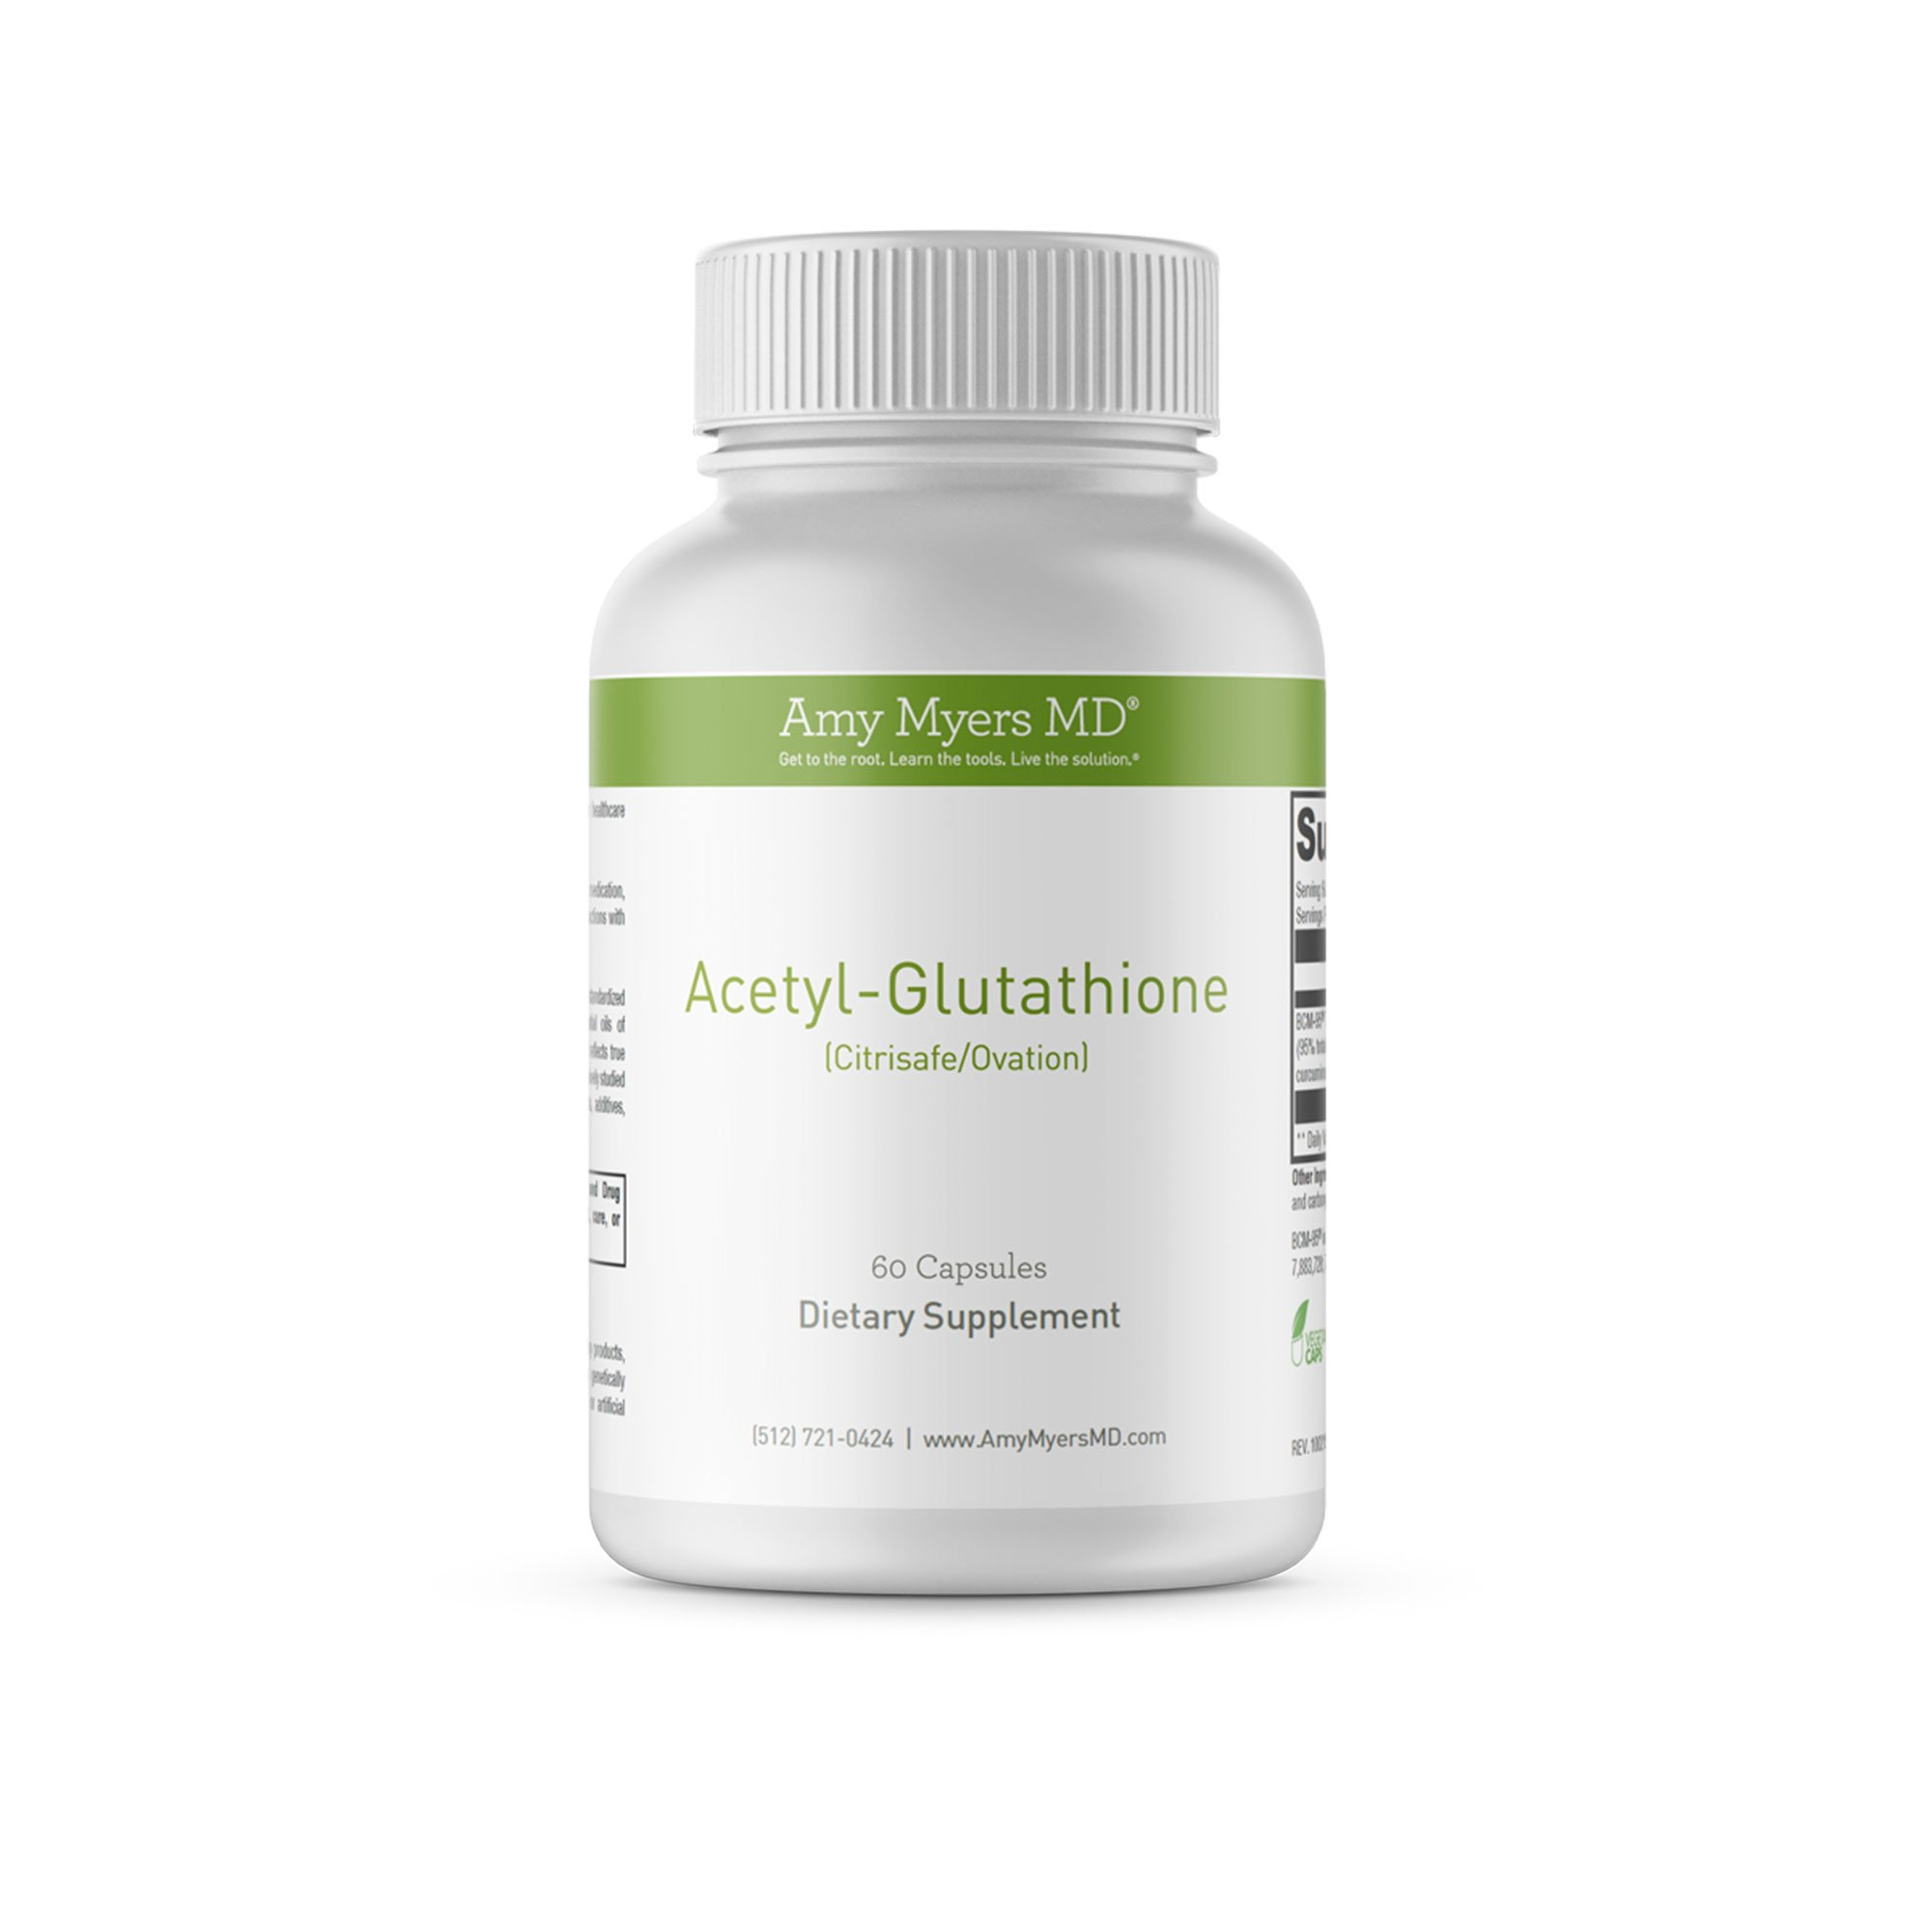 Dr. Amy Myers Acetyl Glutathione 300 mg – Absolute Best Highly Potent Antioxidant Detox Supplement – Immune System and Inflammation Support – Effective Anti-Aging Vitamin – 120 Capsules per Bottle